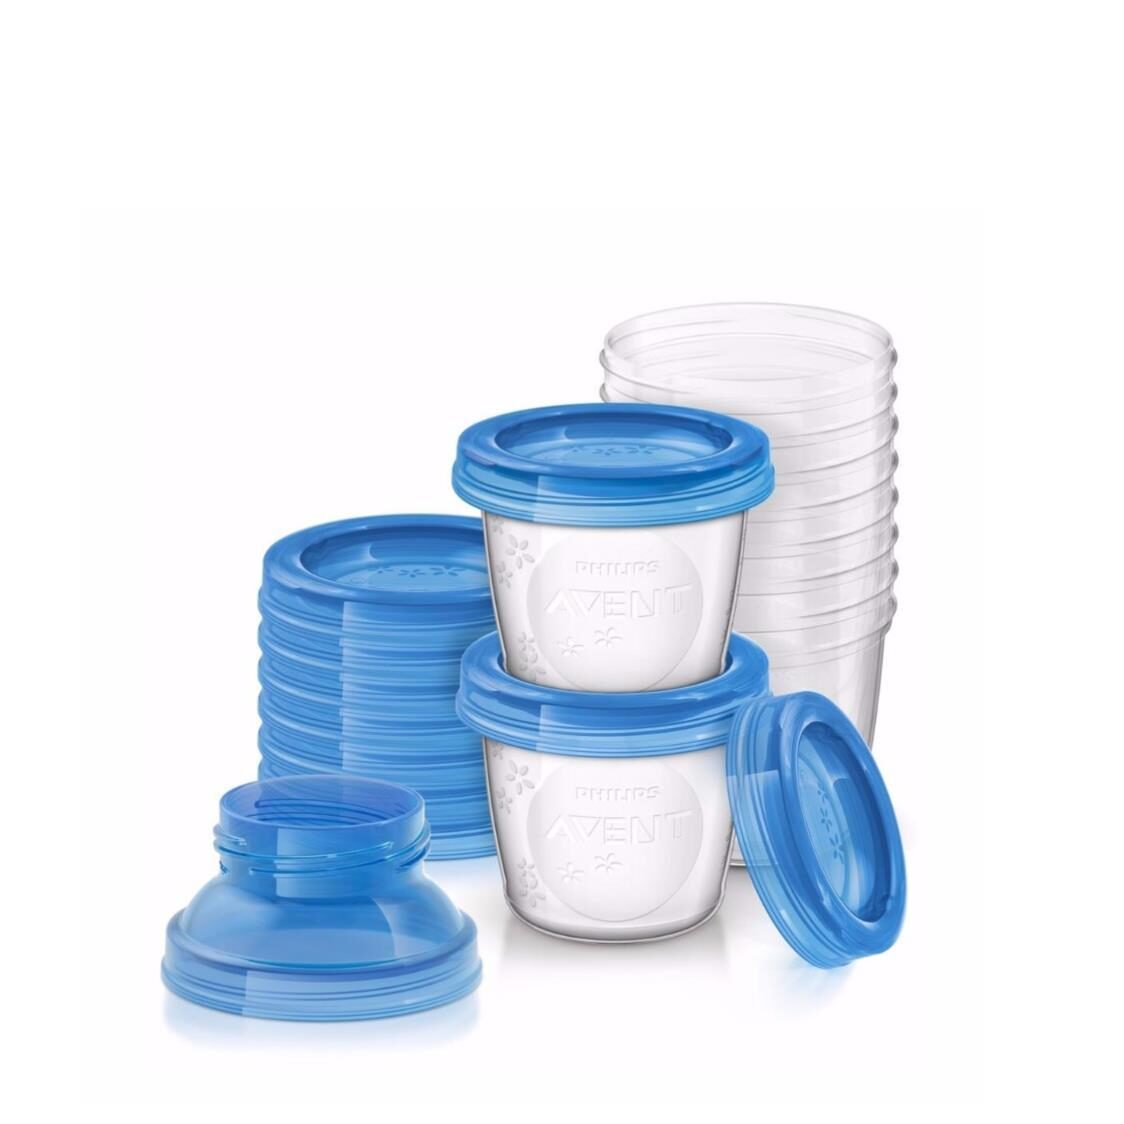 Philips Avent Via Storage Container